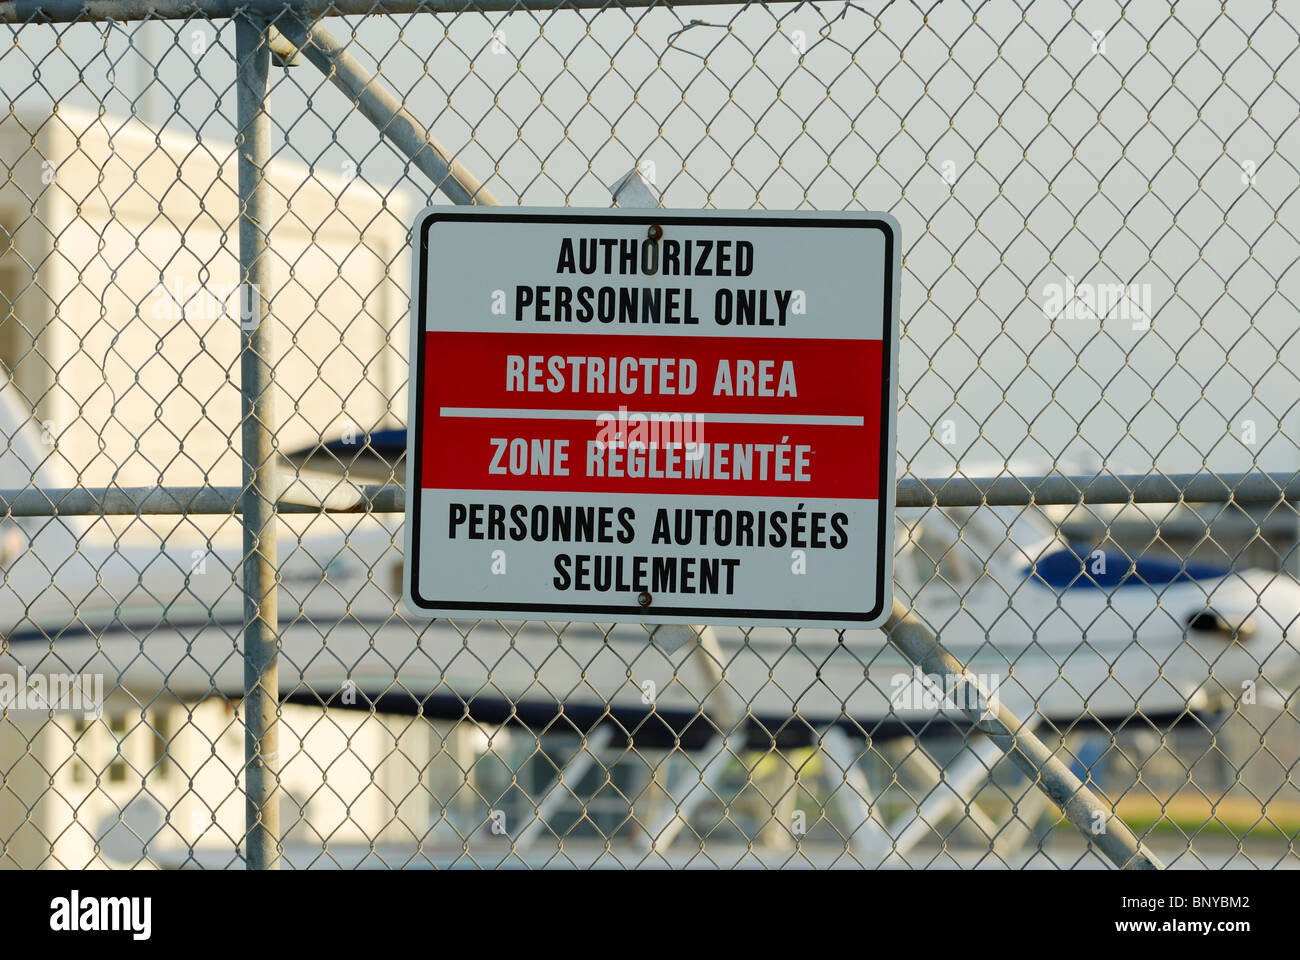 English and French Restricted Area Warning sign attached on a chain link fence which gives access to an airplane - Stock Image